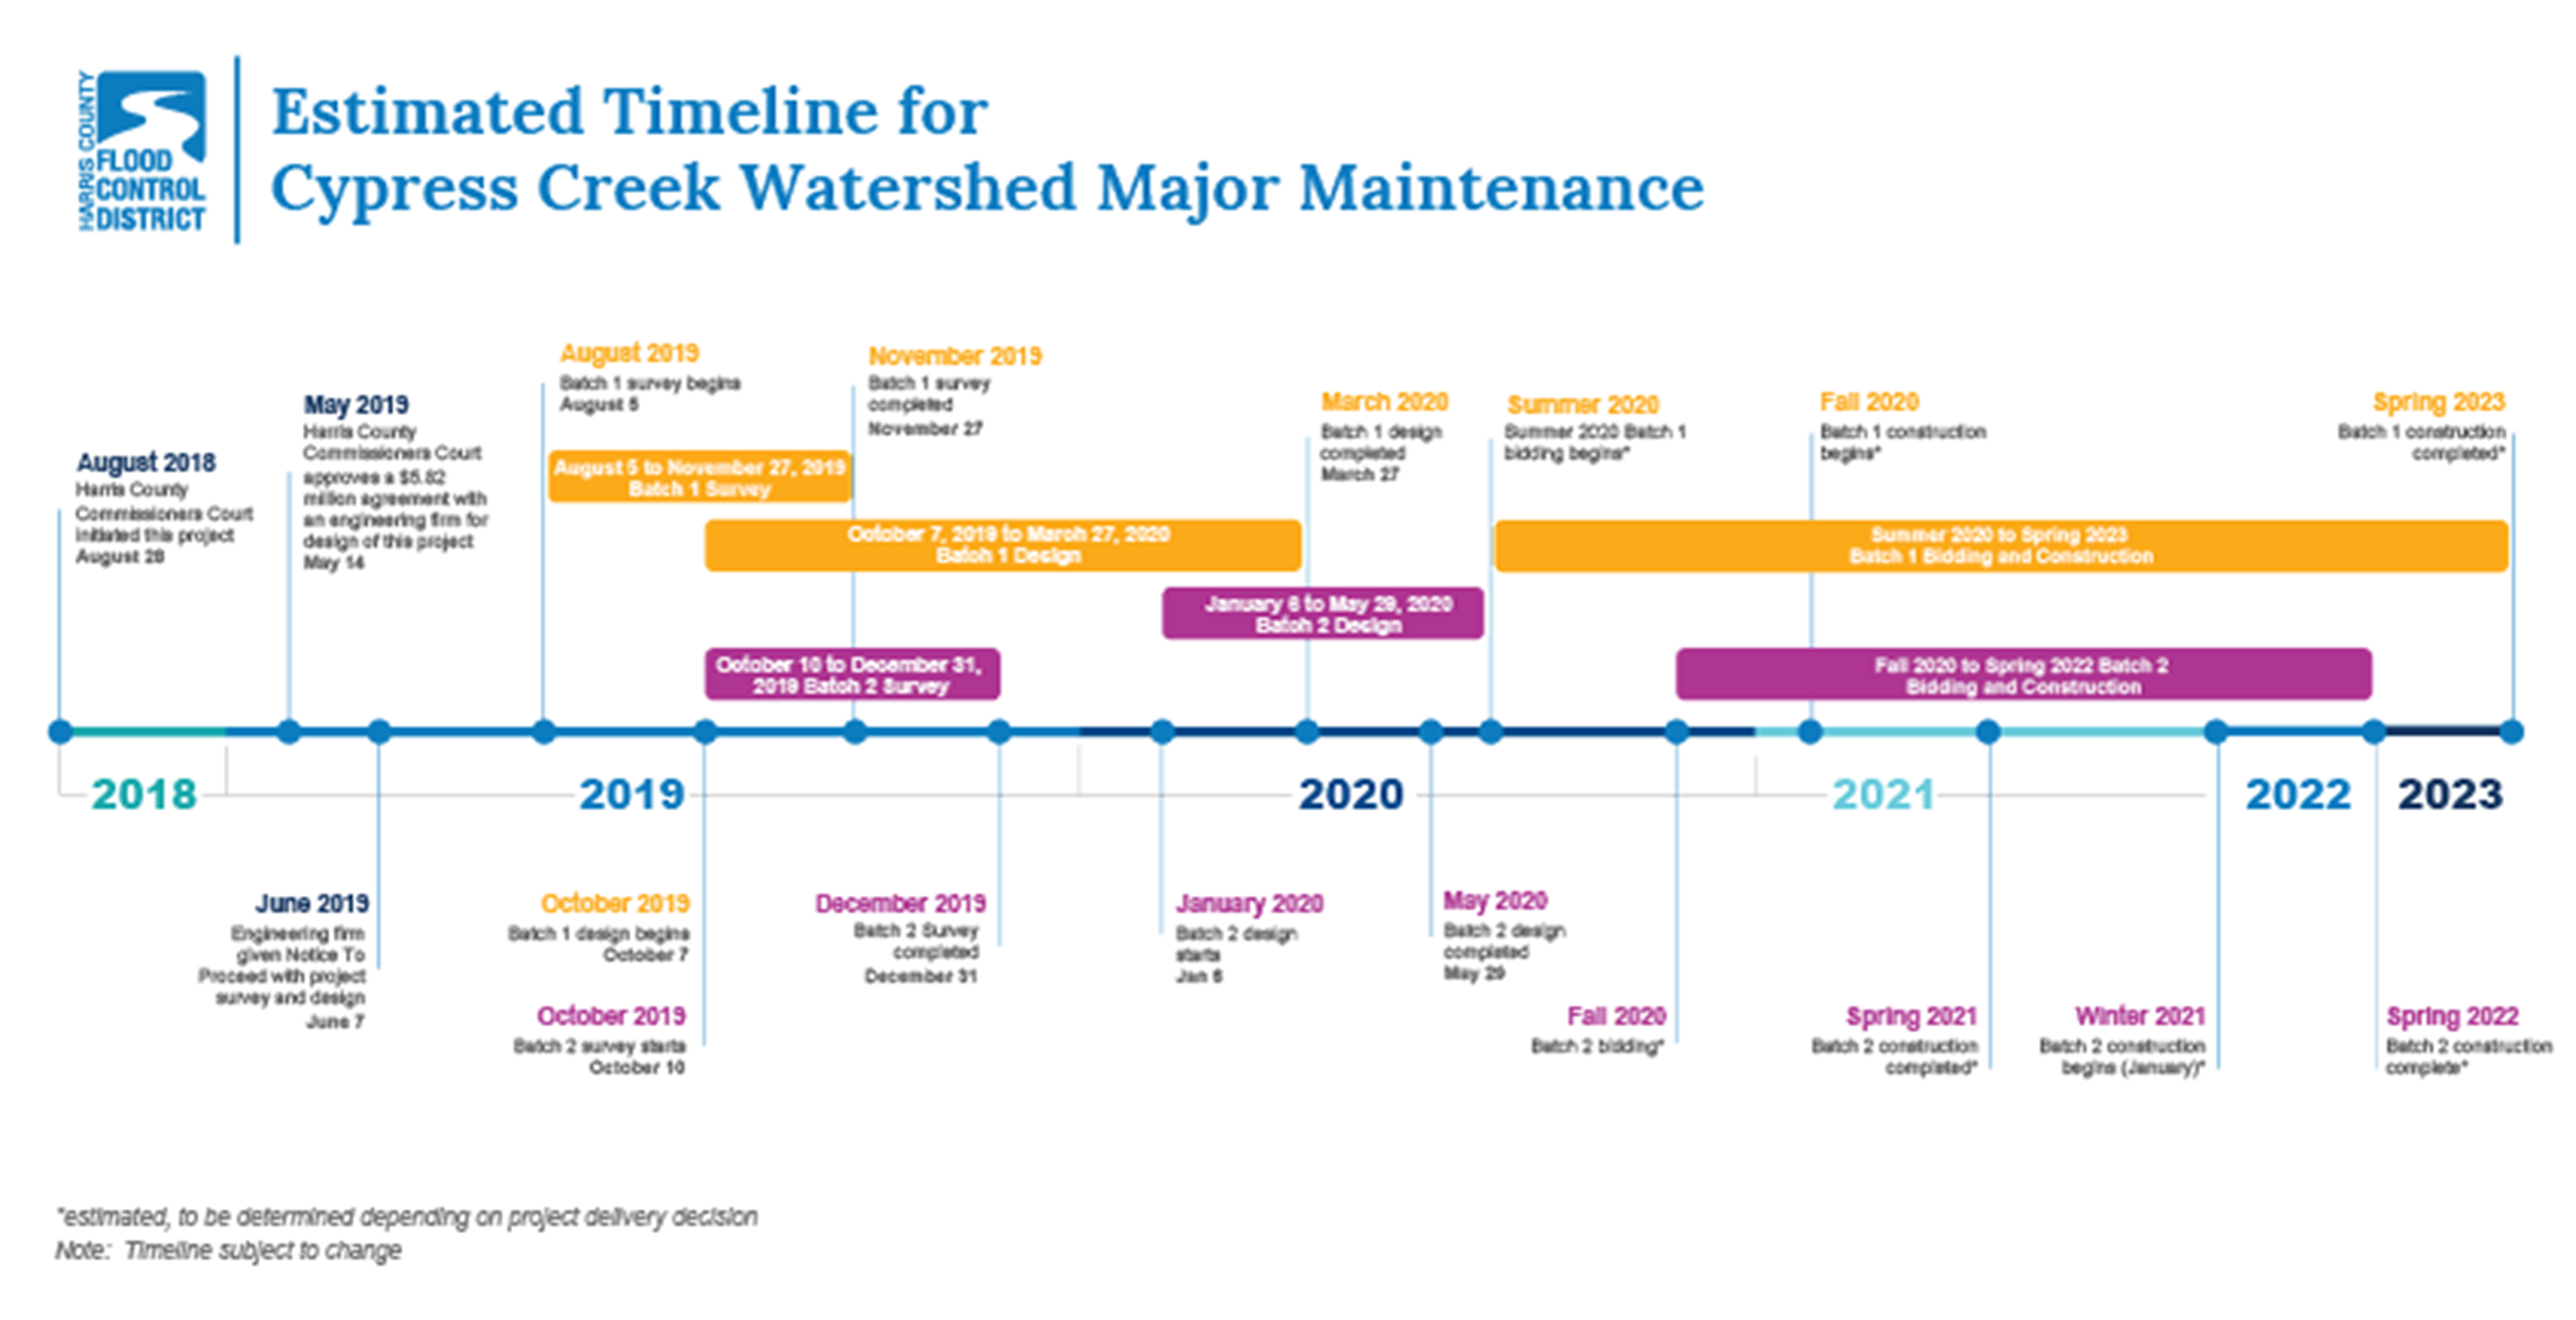 Estimated timeline for Cypress Creek major maintenance. This project was initiated in August 2018, and at this point 2 batches of project sites have completed survey and design stages, and are currently in either the bidding or early construction stages.